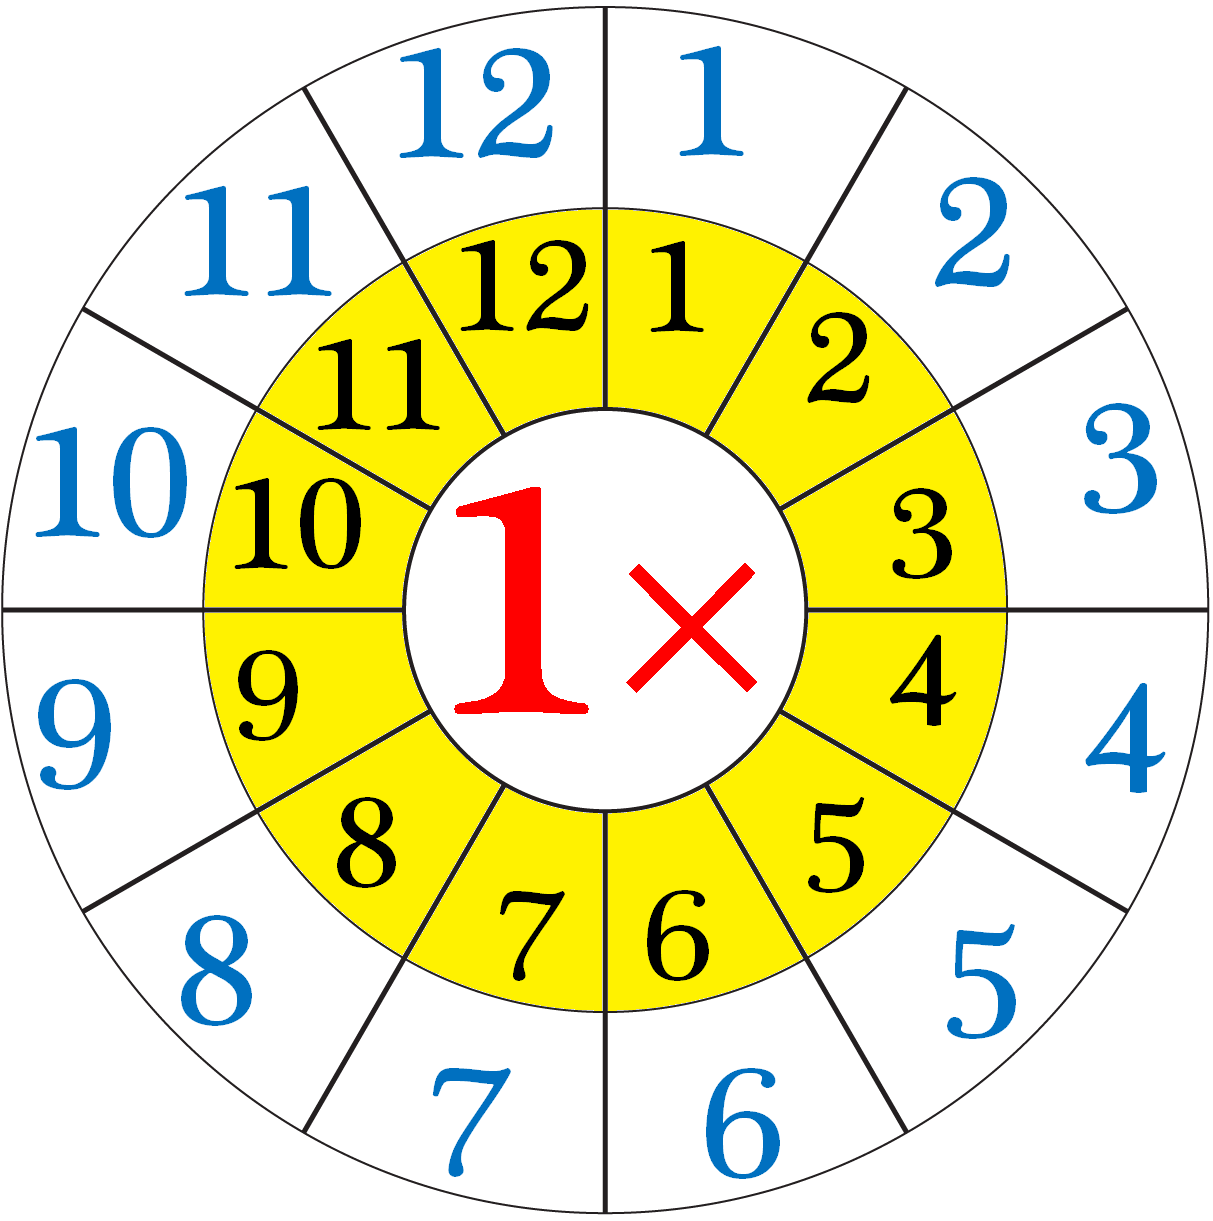 Multiplication Table of One